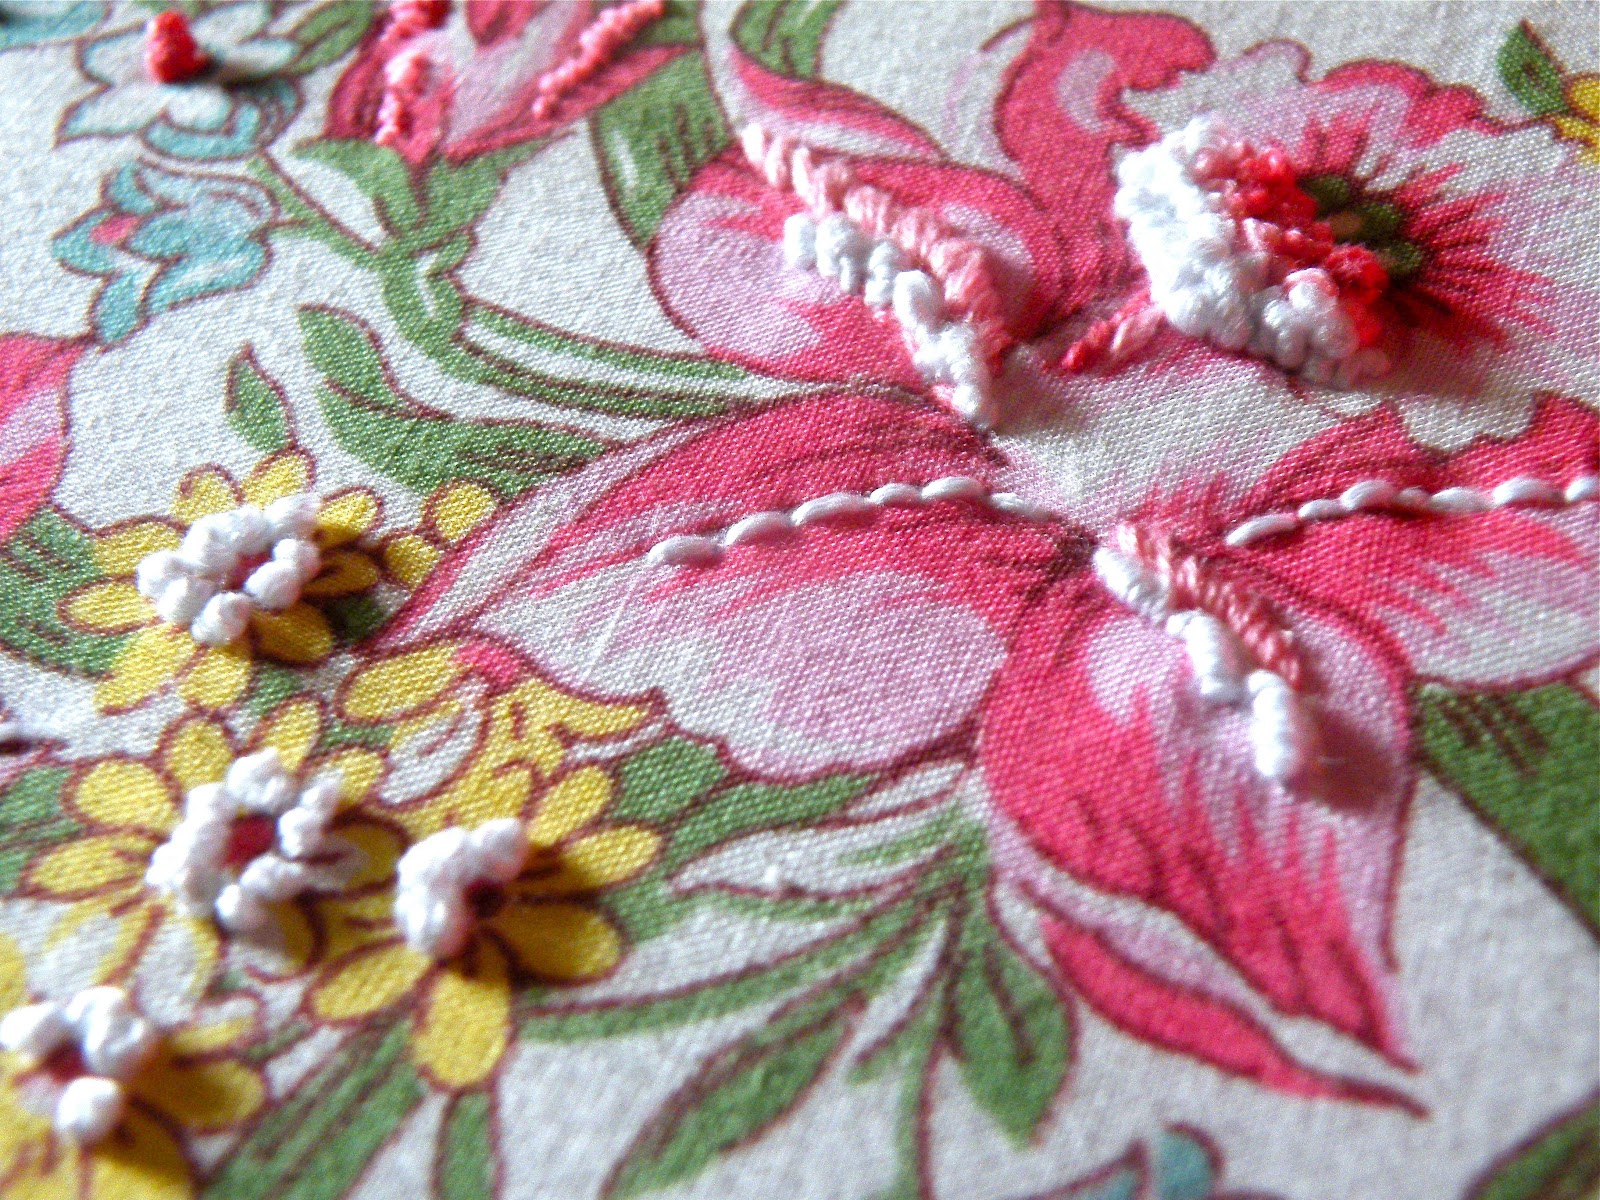 pinterest embroidery, ModernJune: Playing around on Pinterest: Embroidery